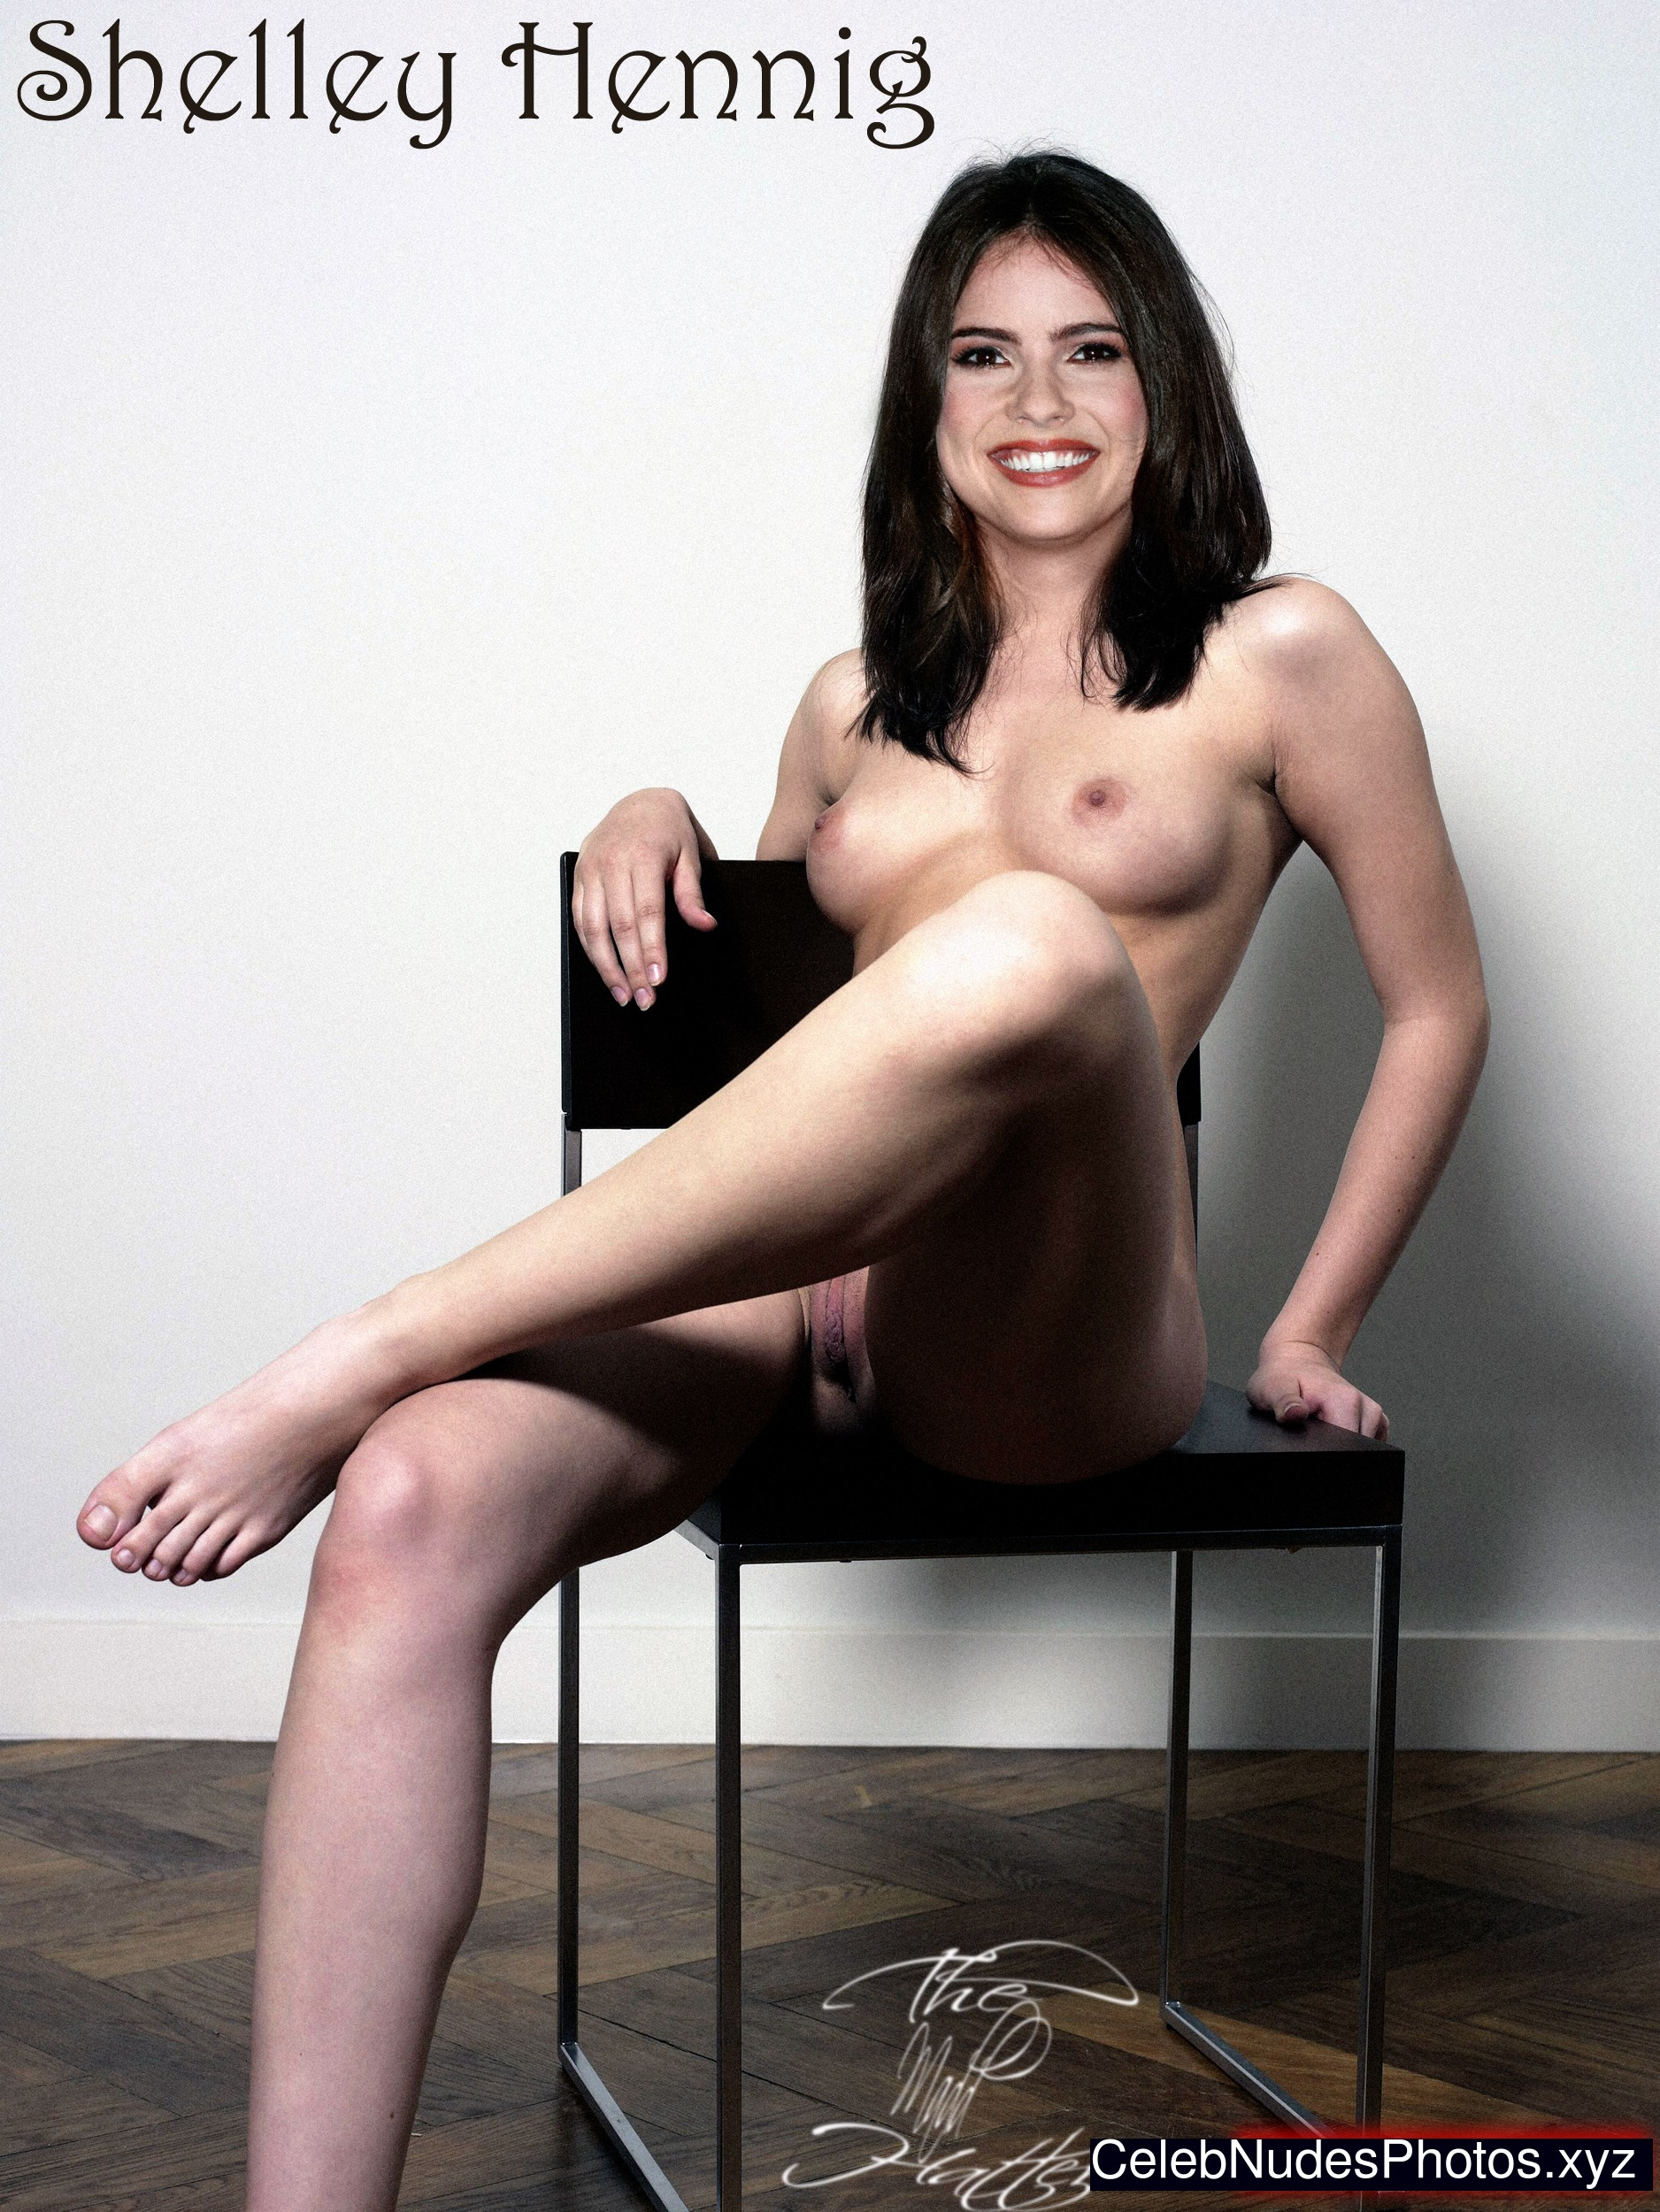 Shelley Hennig nude celebrity pictures